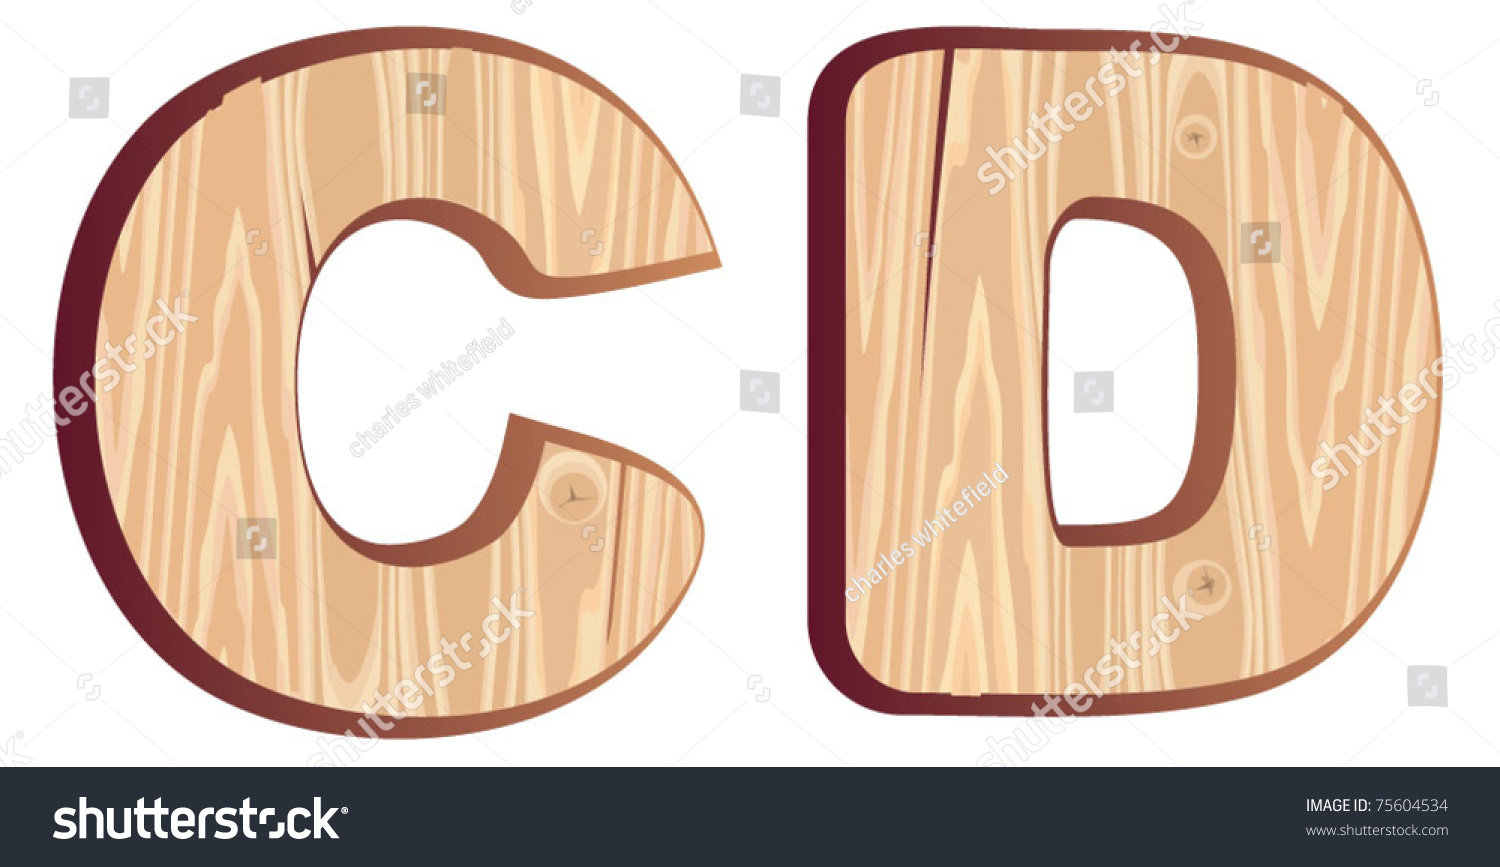 c d wood font isolated wooden letter type